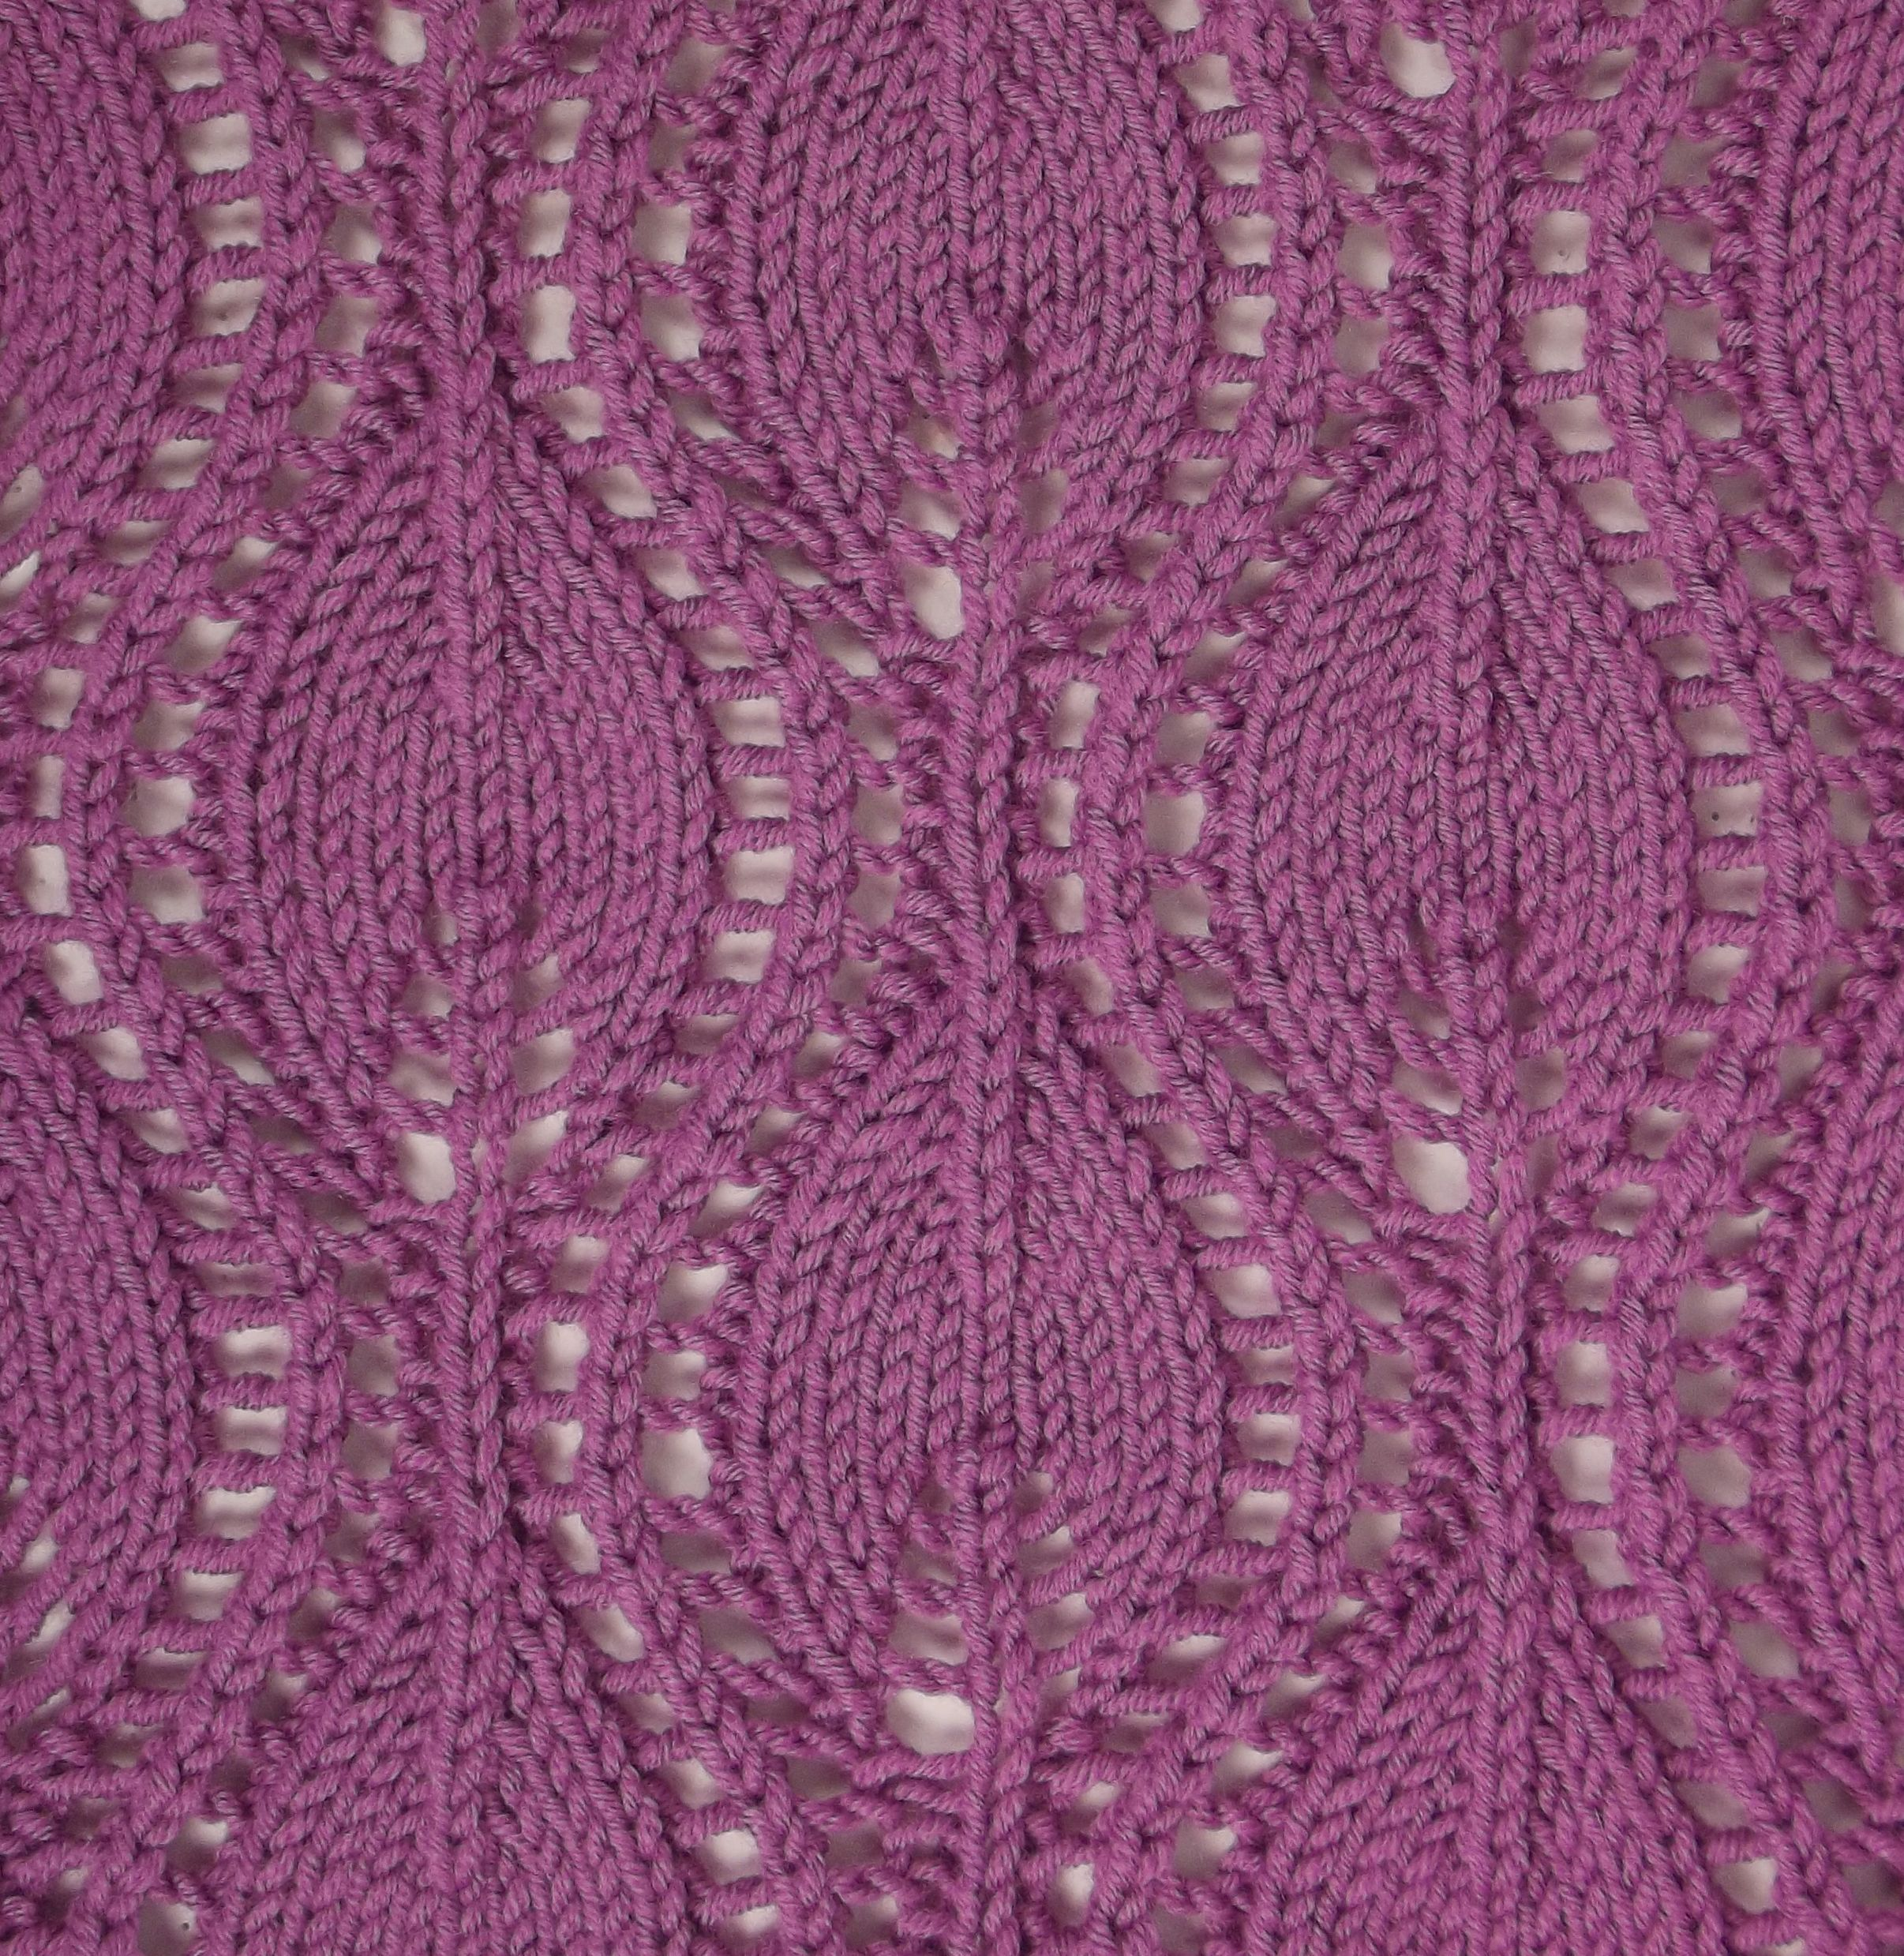 Lace Knitting Pattern Library : Ogee Lace II differs a lot from the traditional Ogee Lace ...